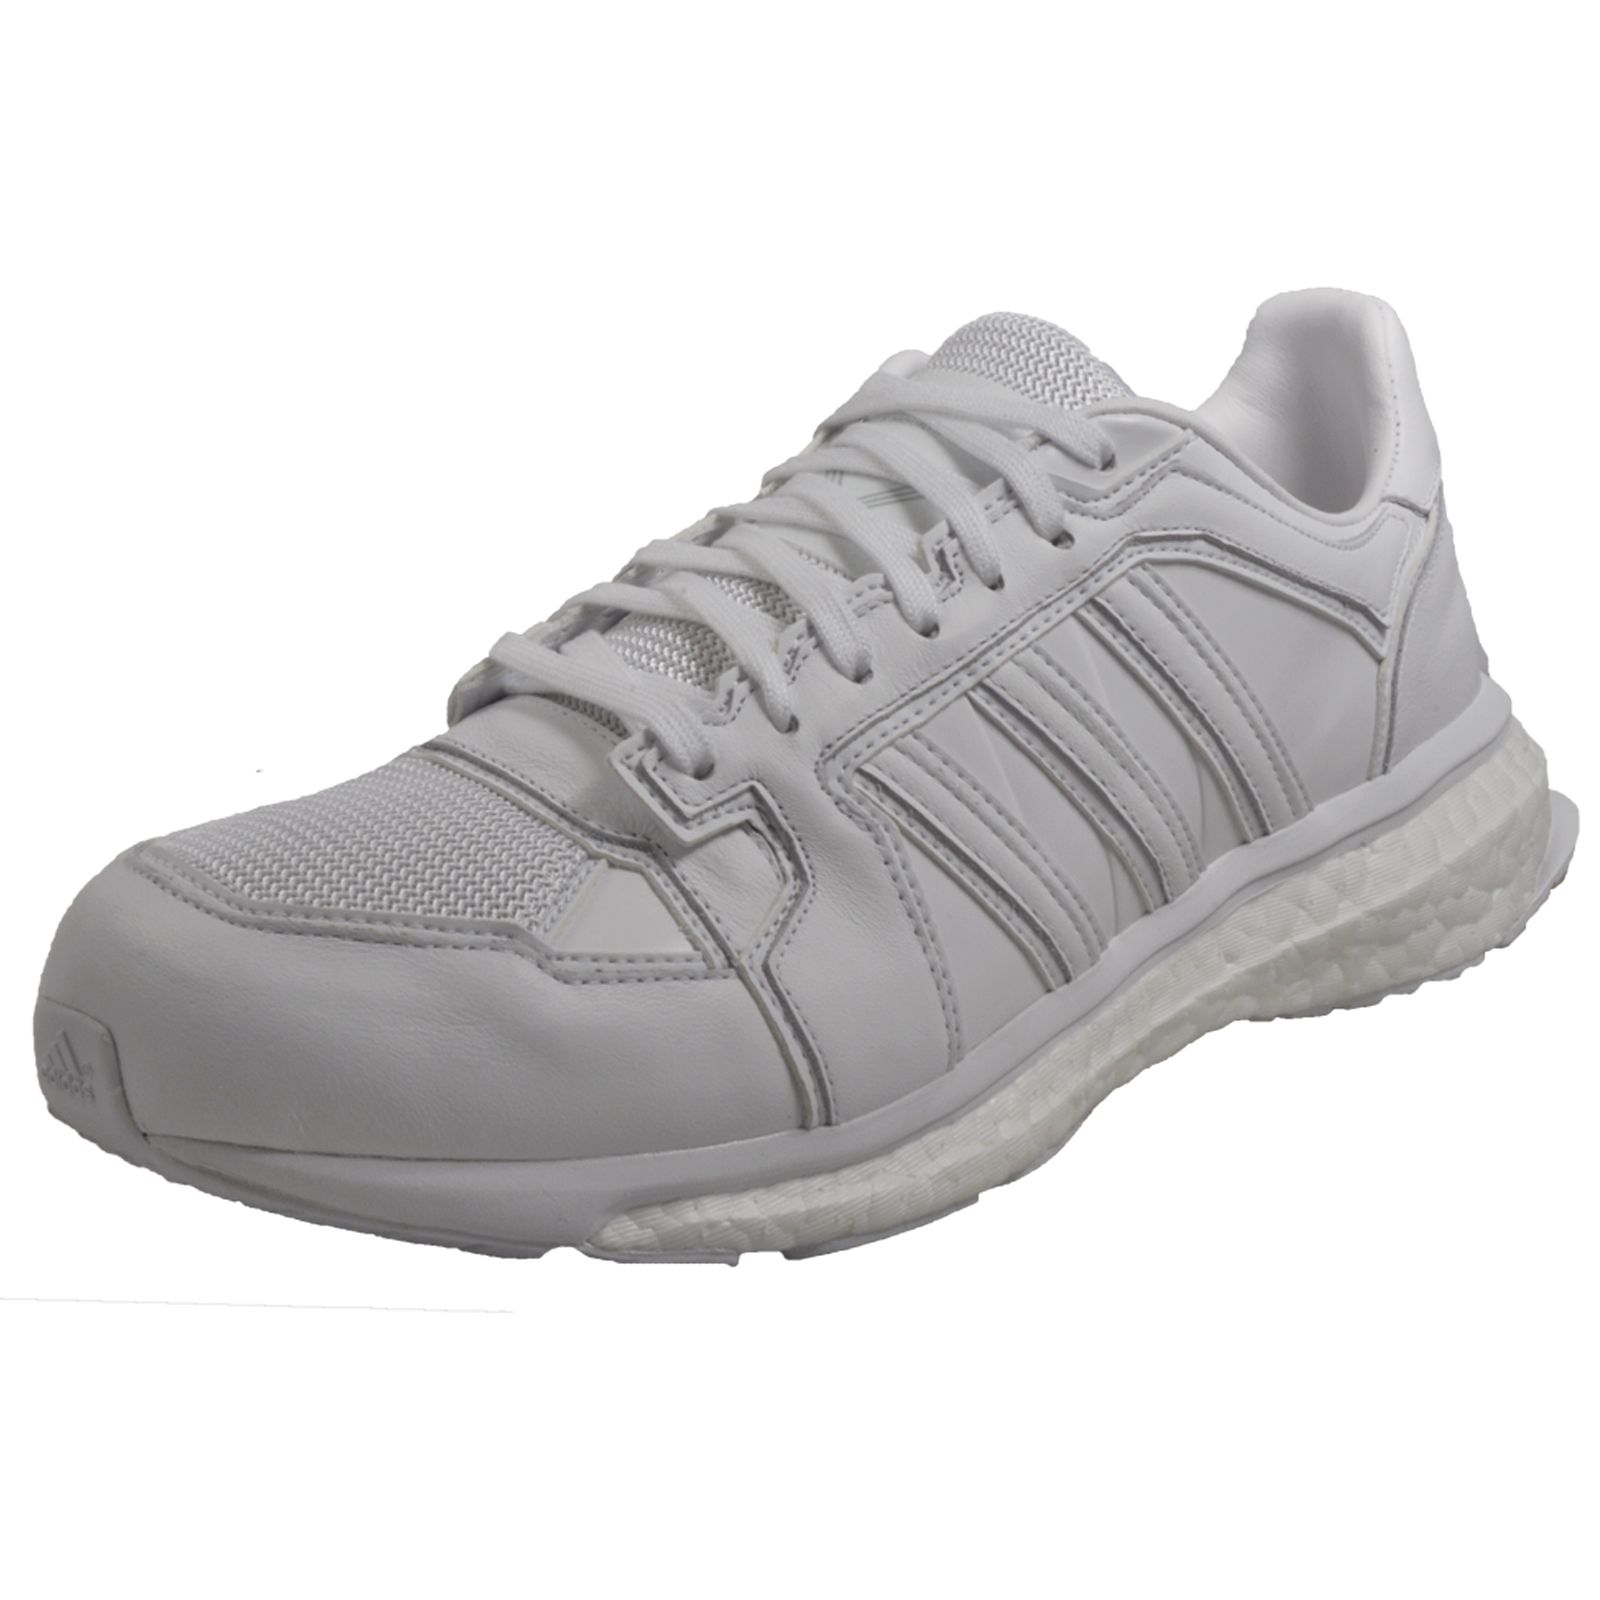 28f7f3ab5 Details about Adidas Originals White Mountaineering Energy Boost Uni Casual  Classic Trainers L